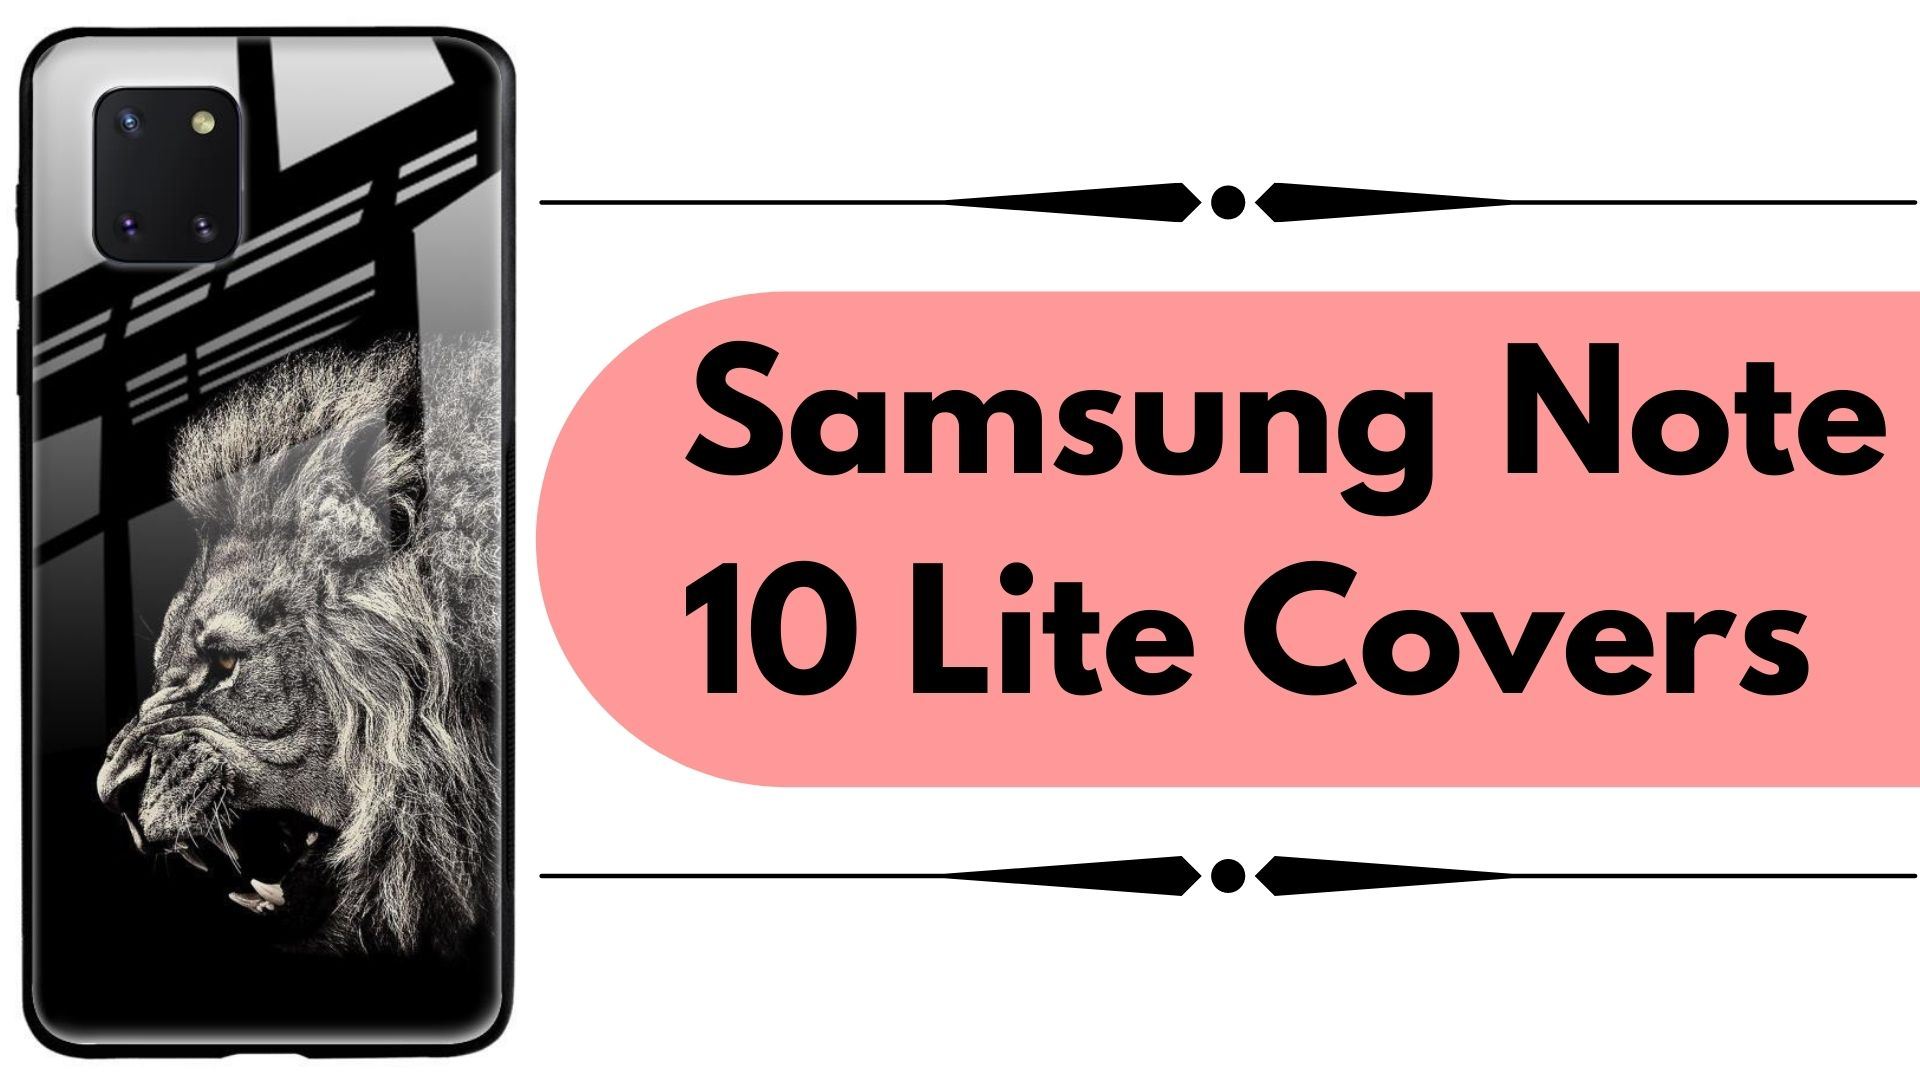 Samsung Note 10 Lite Covers